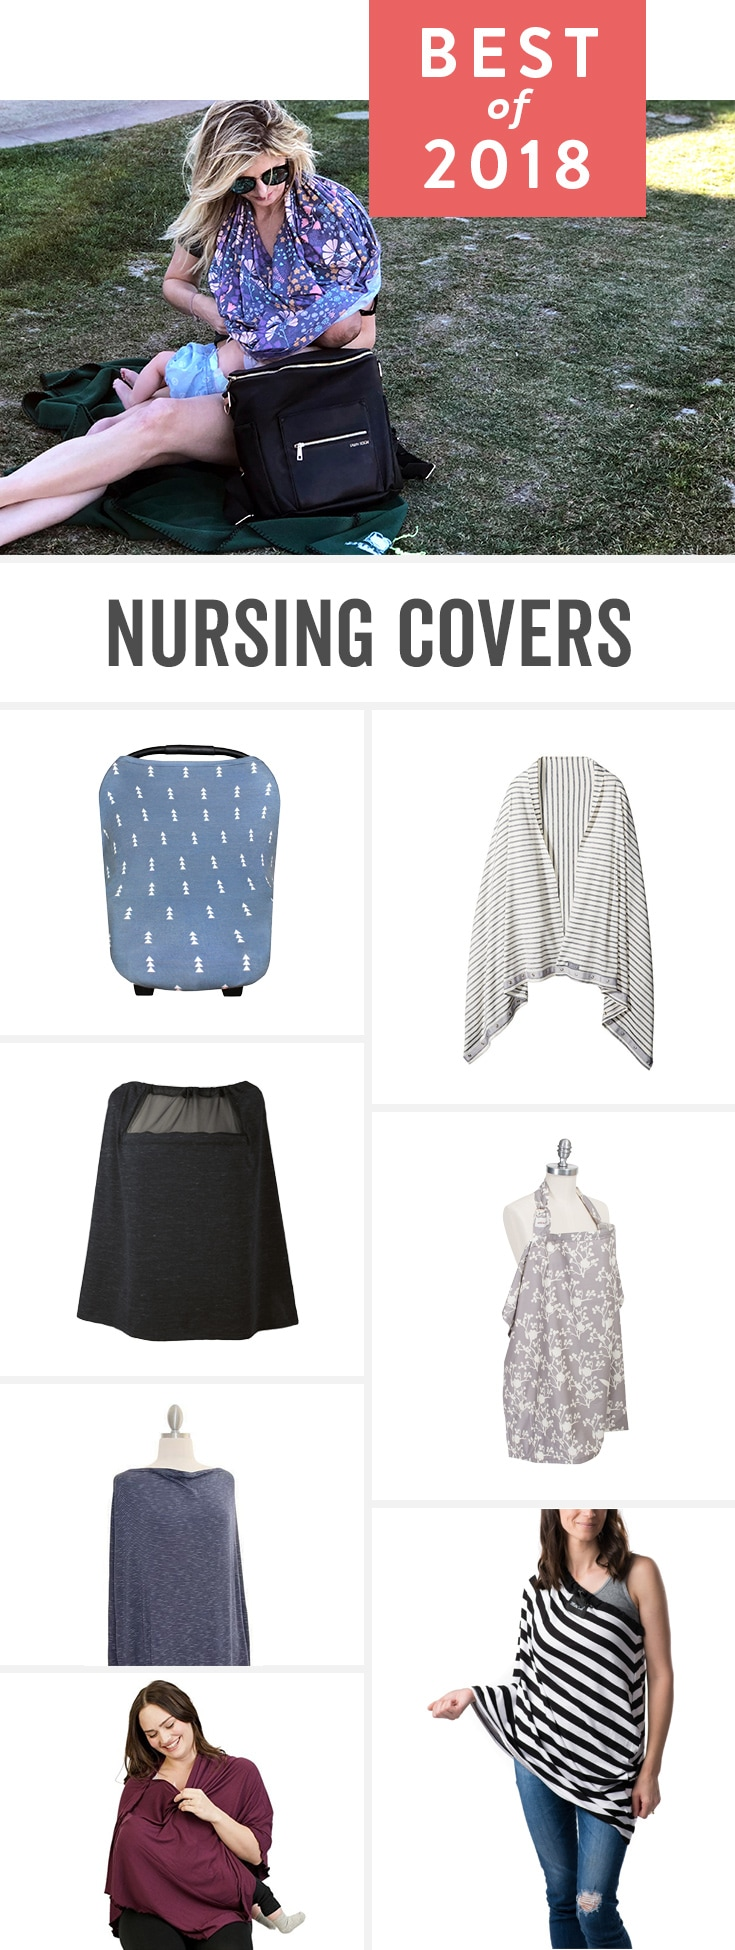 2a53a7e327375 Full coverage nursing covers and stylish cover ups for moms who want to cover  up while ...